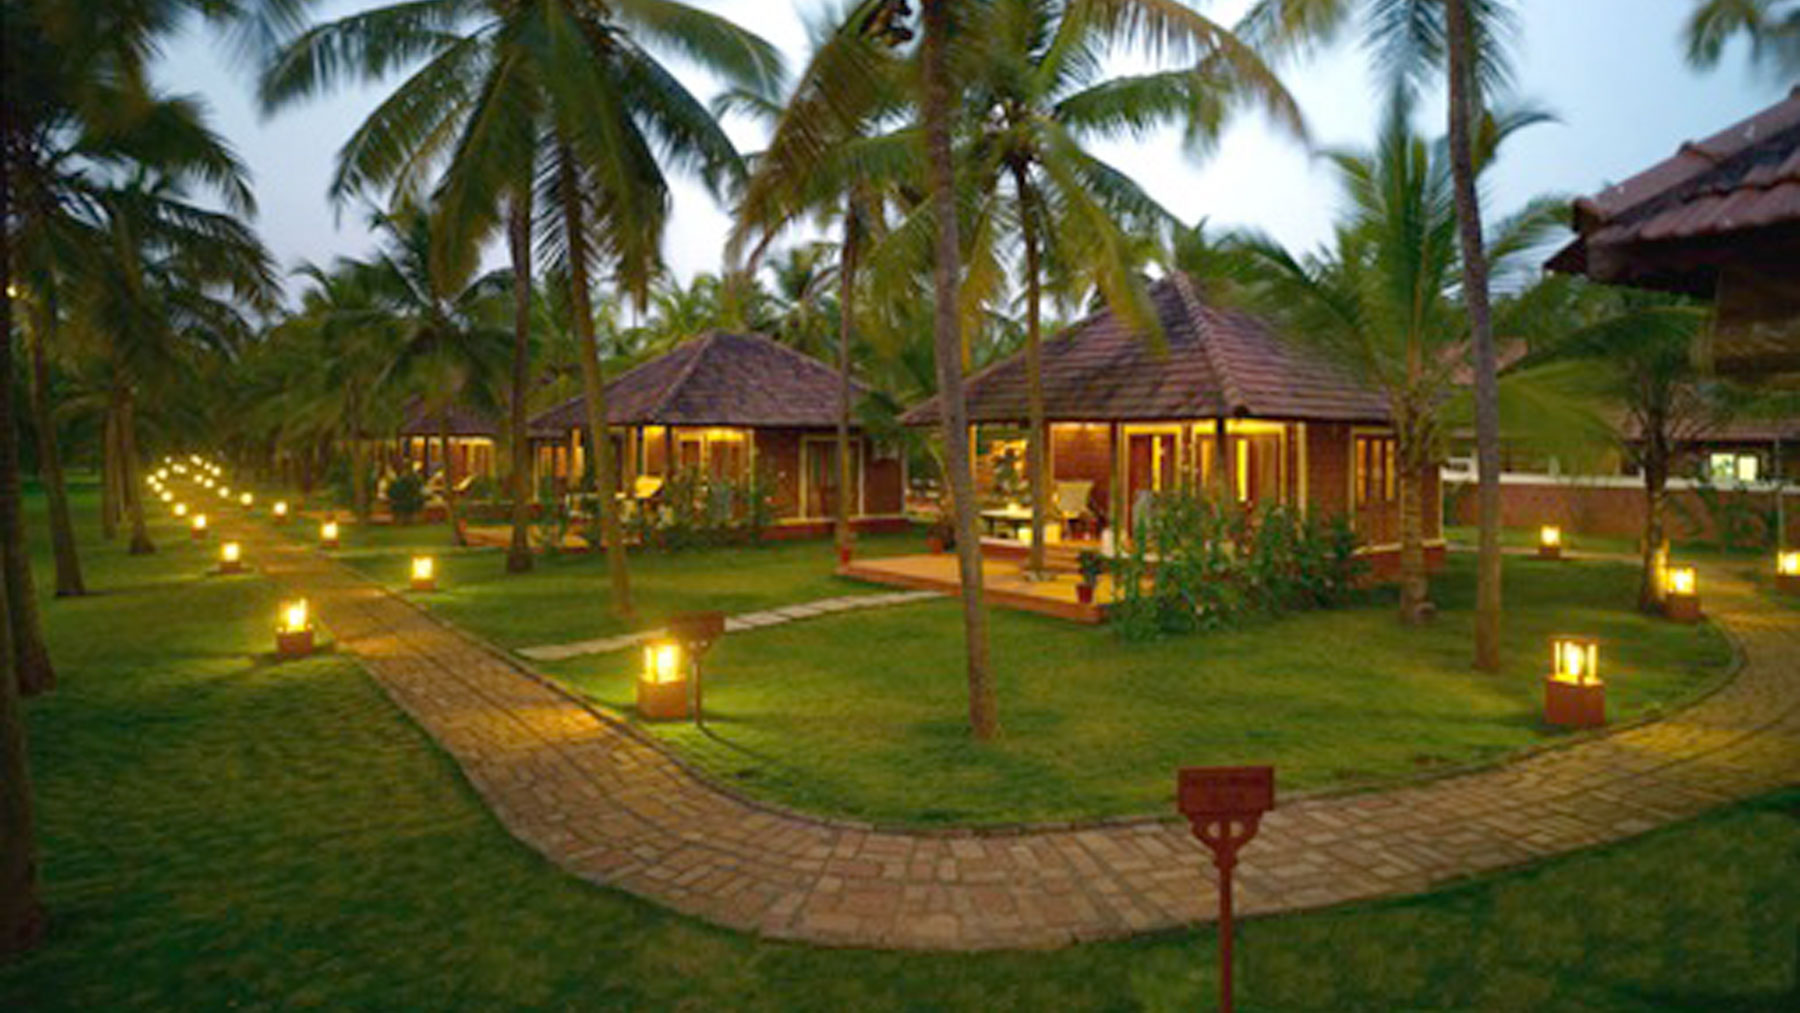 Beach house in ecr mobile no 9381017742 by apple beach house and resorts modern resorts for Ecr beach resorts with swimming pool prices